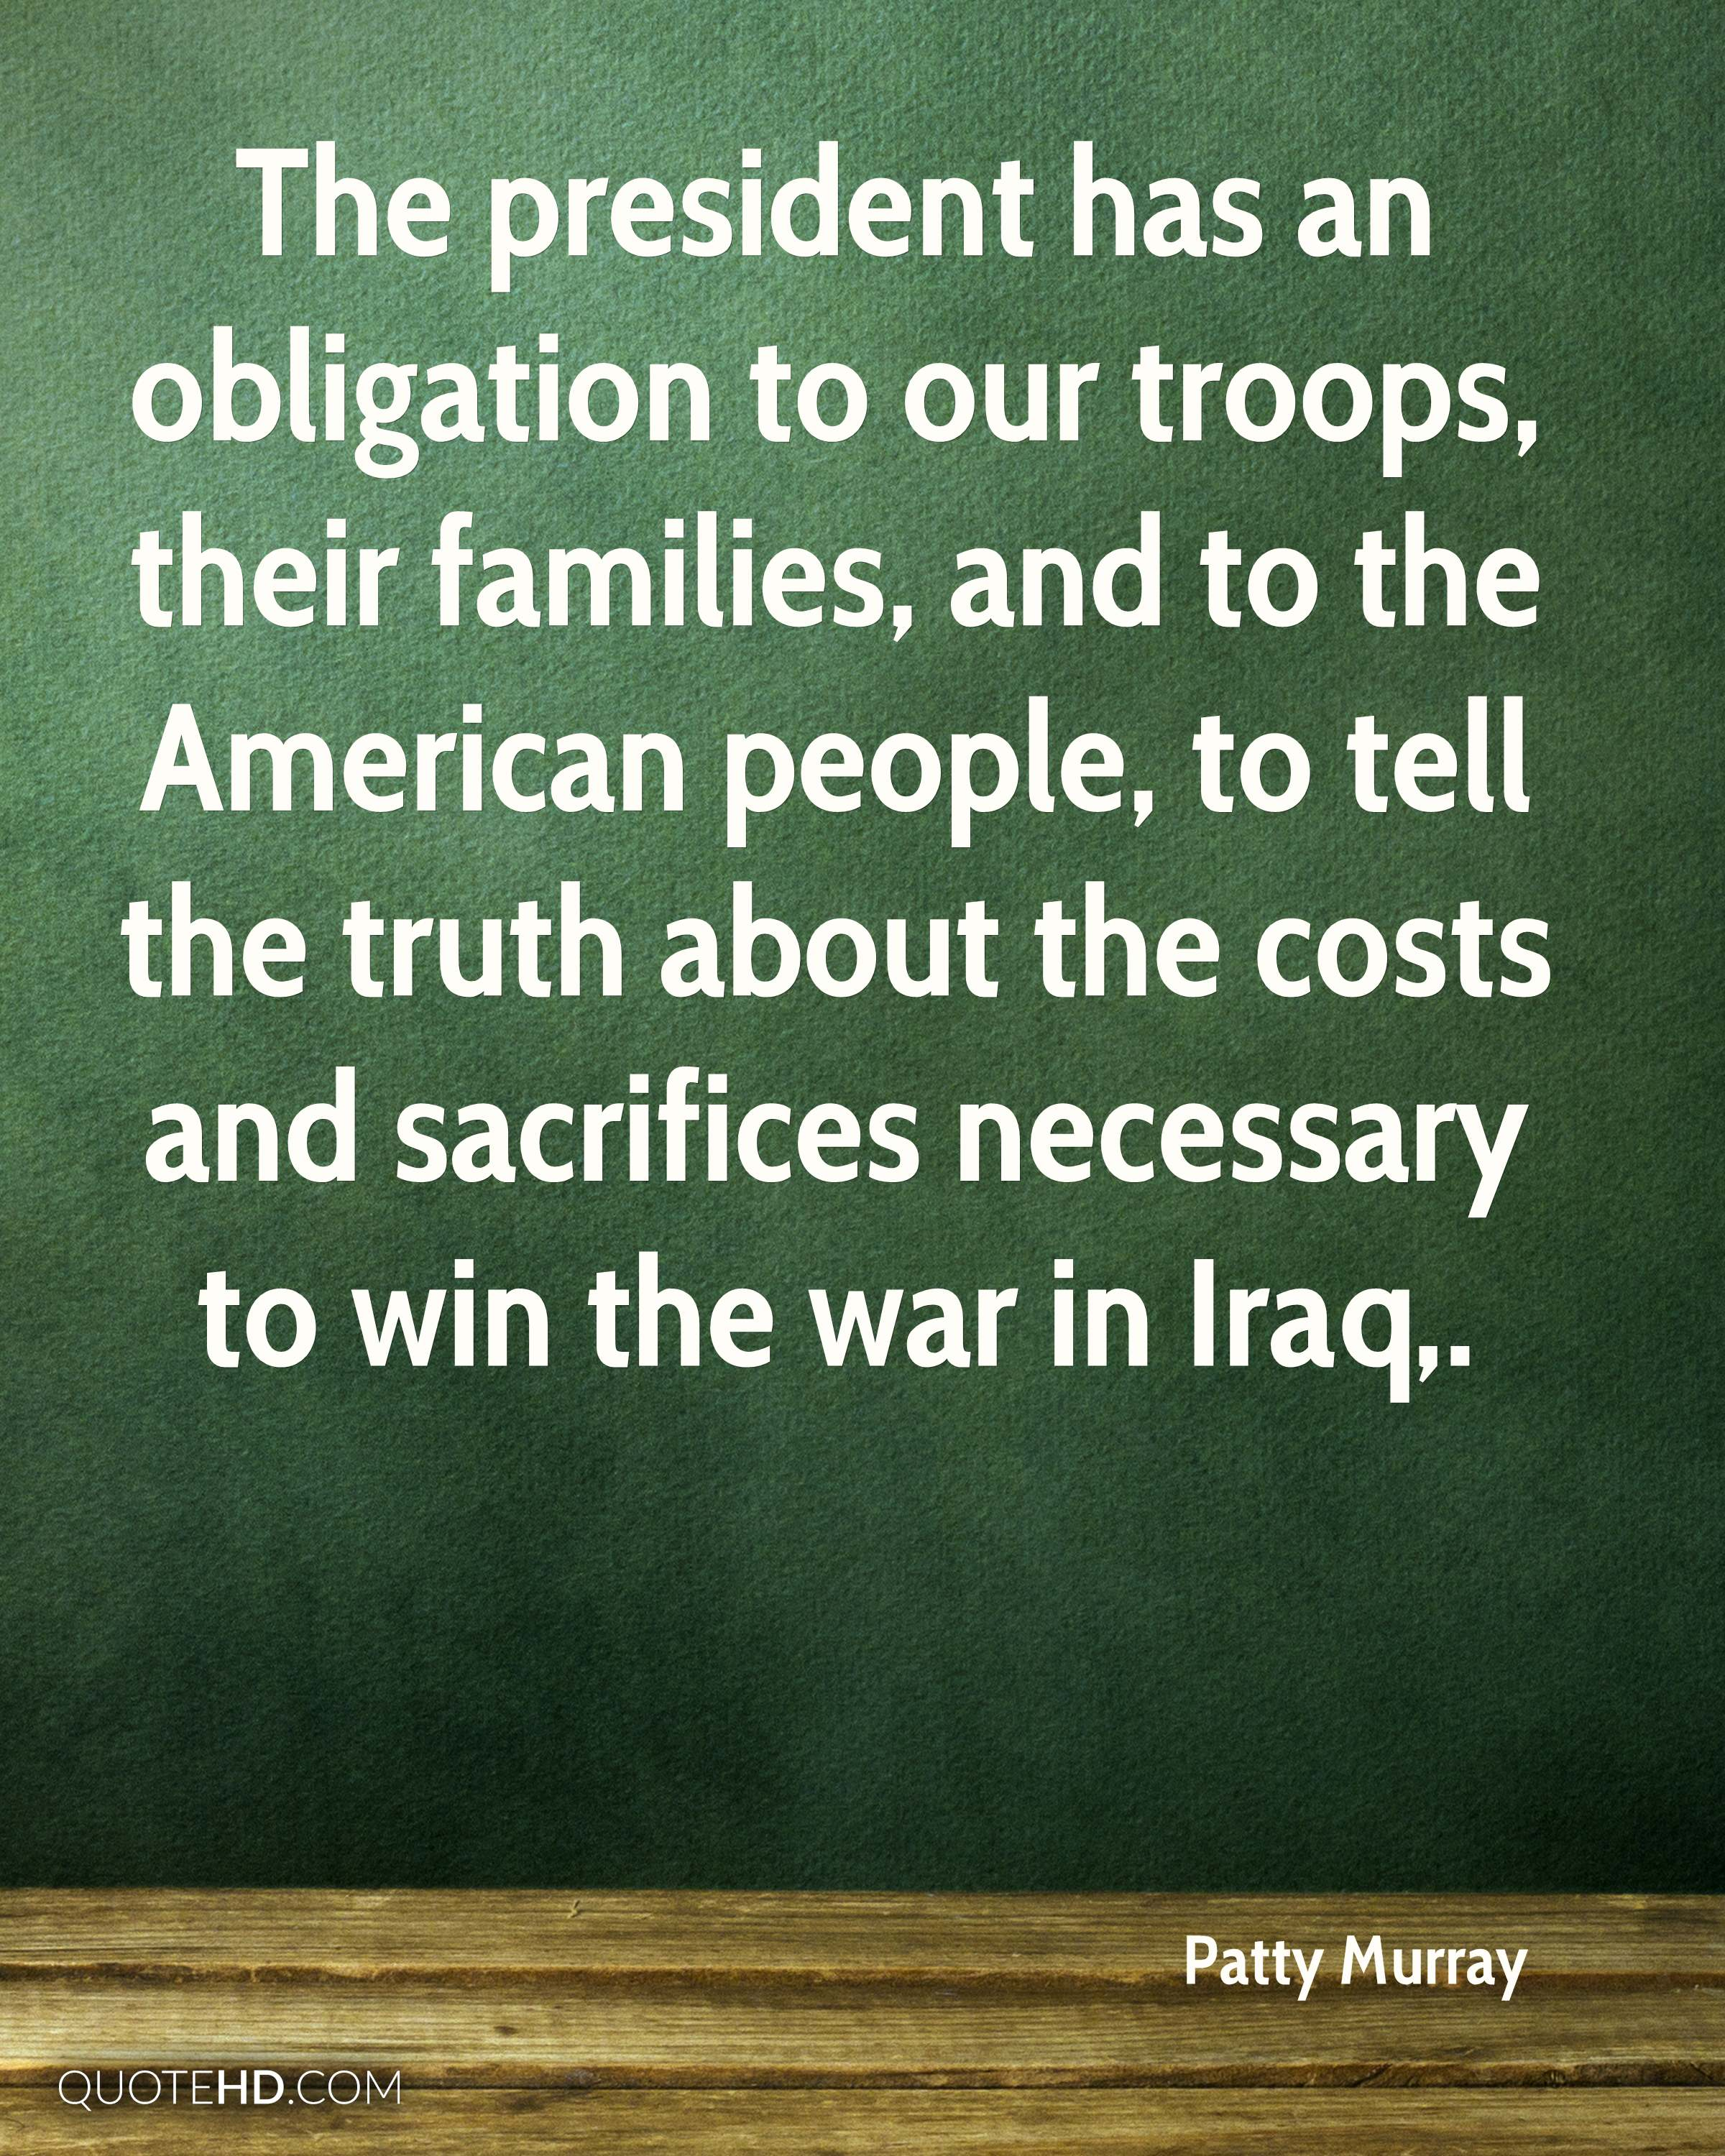 The president has an obligation to our troops, their families, and to the American people, to tell the truth about the costs and sacrifices necessary to win the war in Iraq.